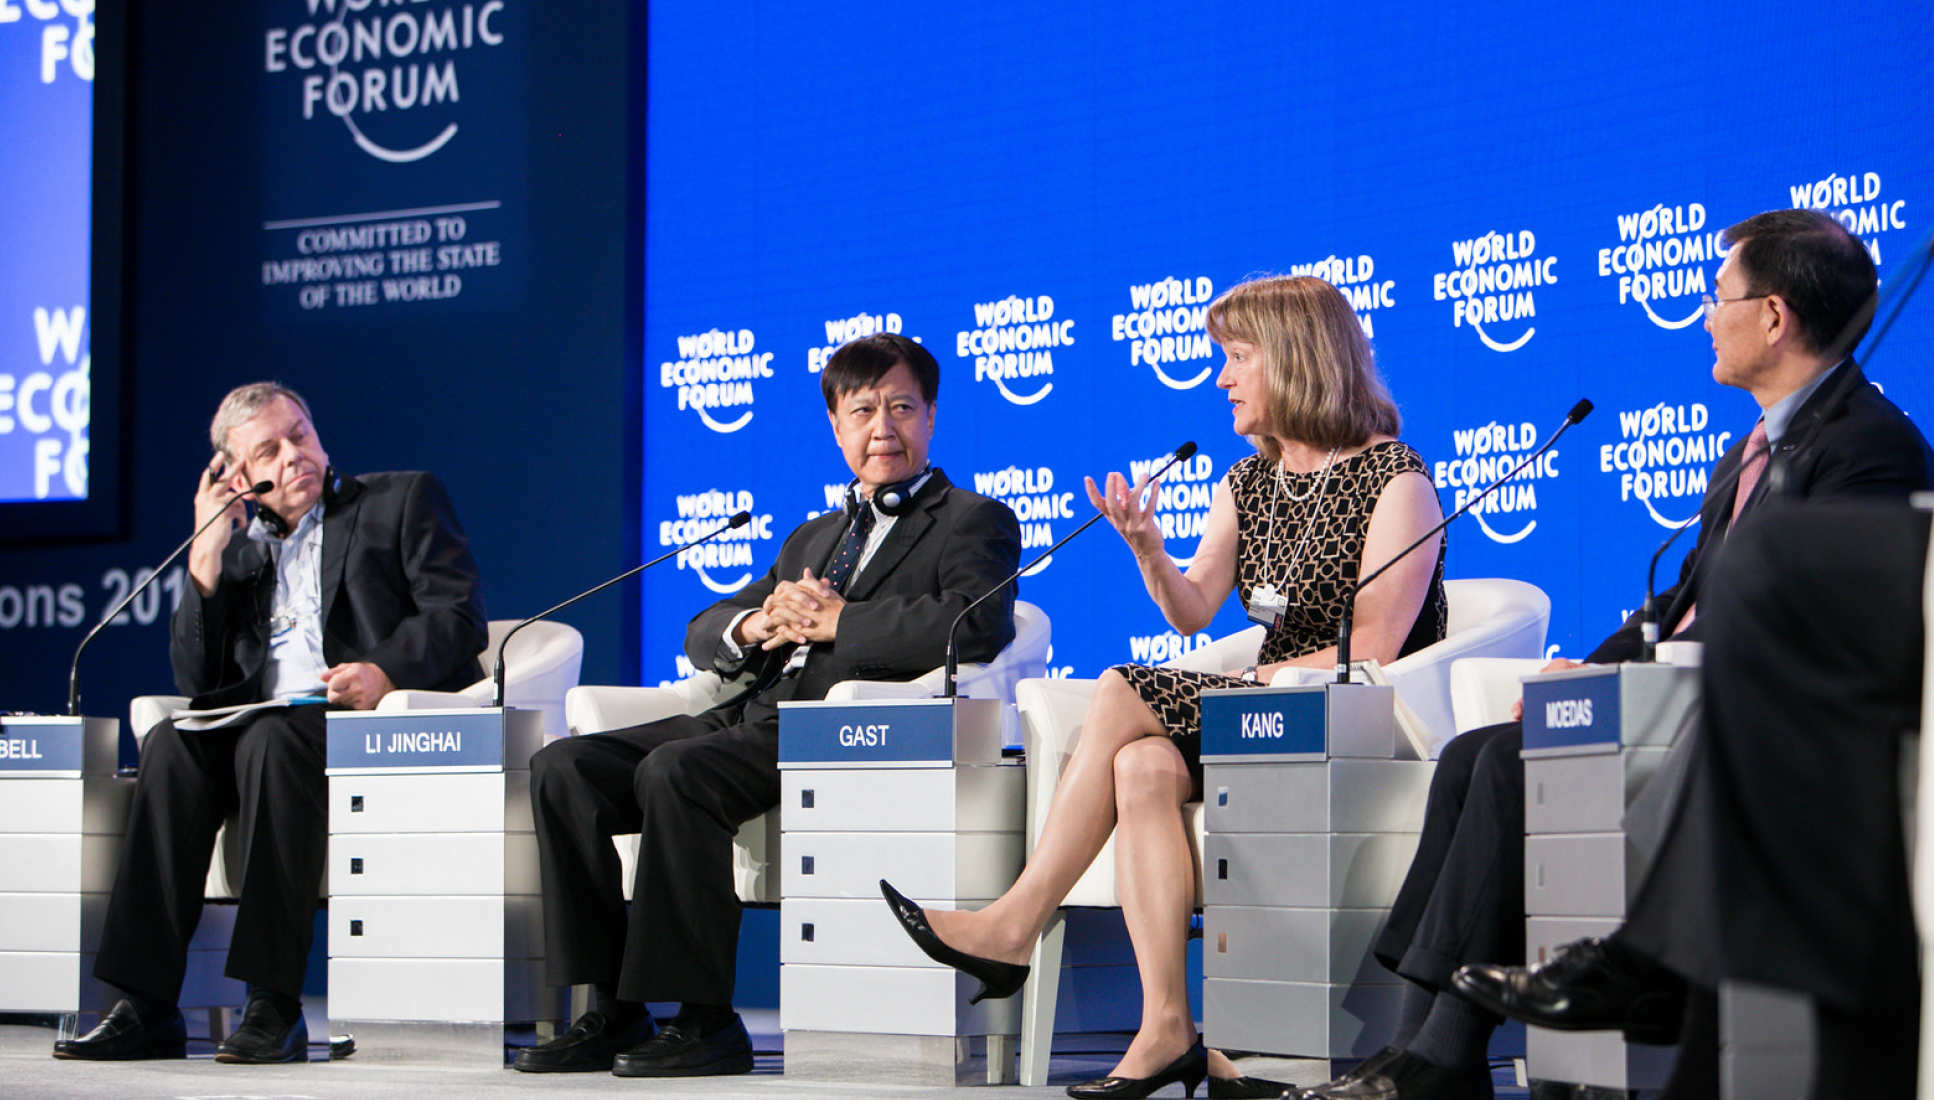 President Gast speaks at the World Economic Forum